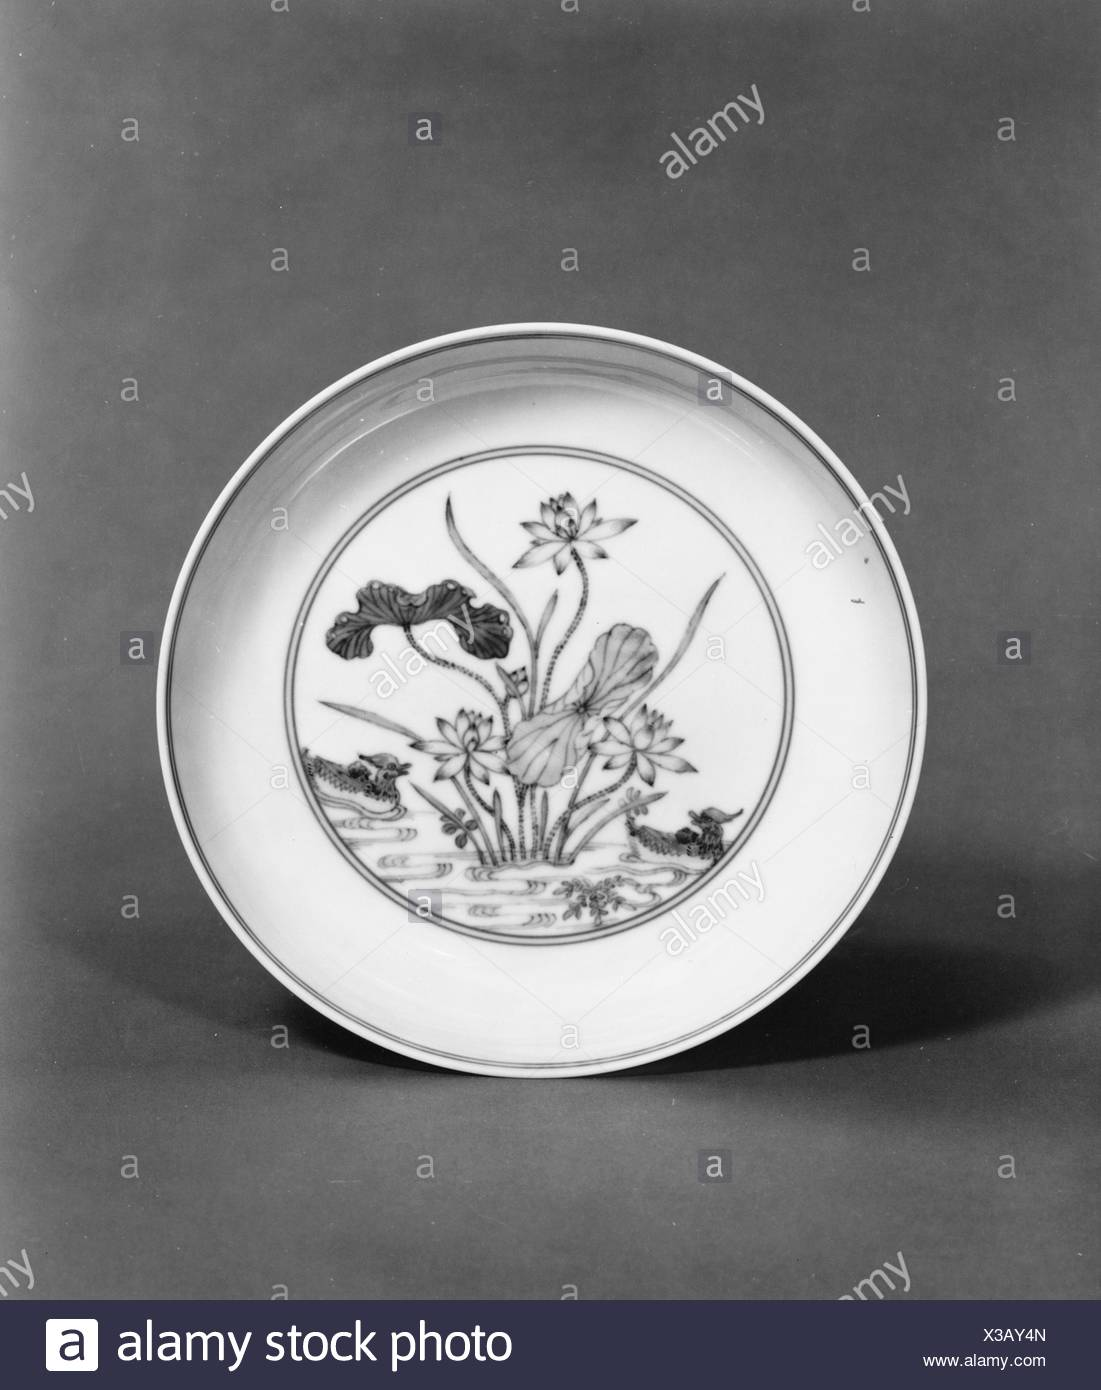 Period: Qing dynasty (1644-1911), Yongzheng mark and period (1723-35);  Date: early 18th century; Culture: China; Medium: